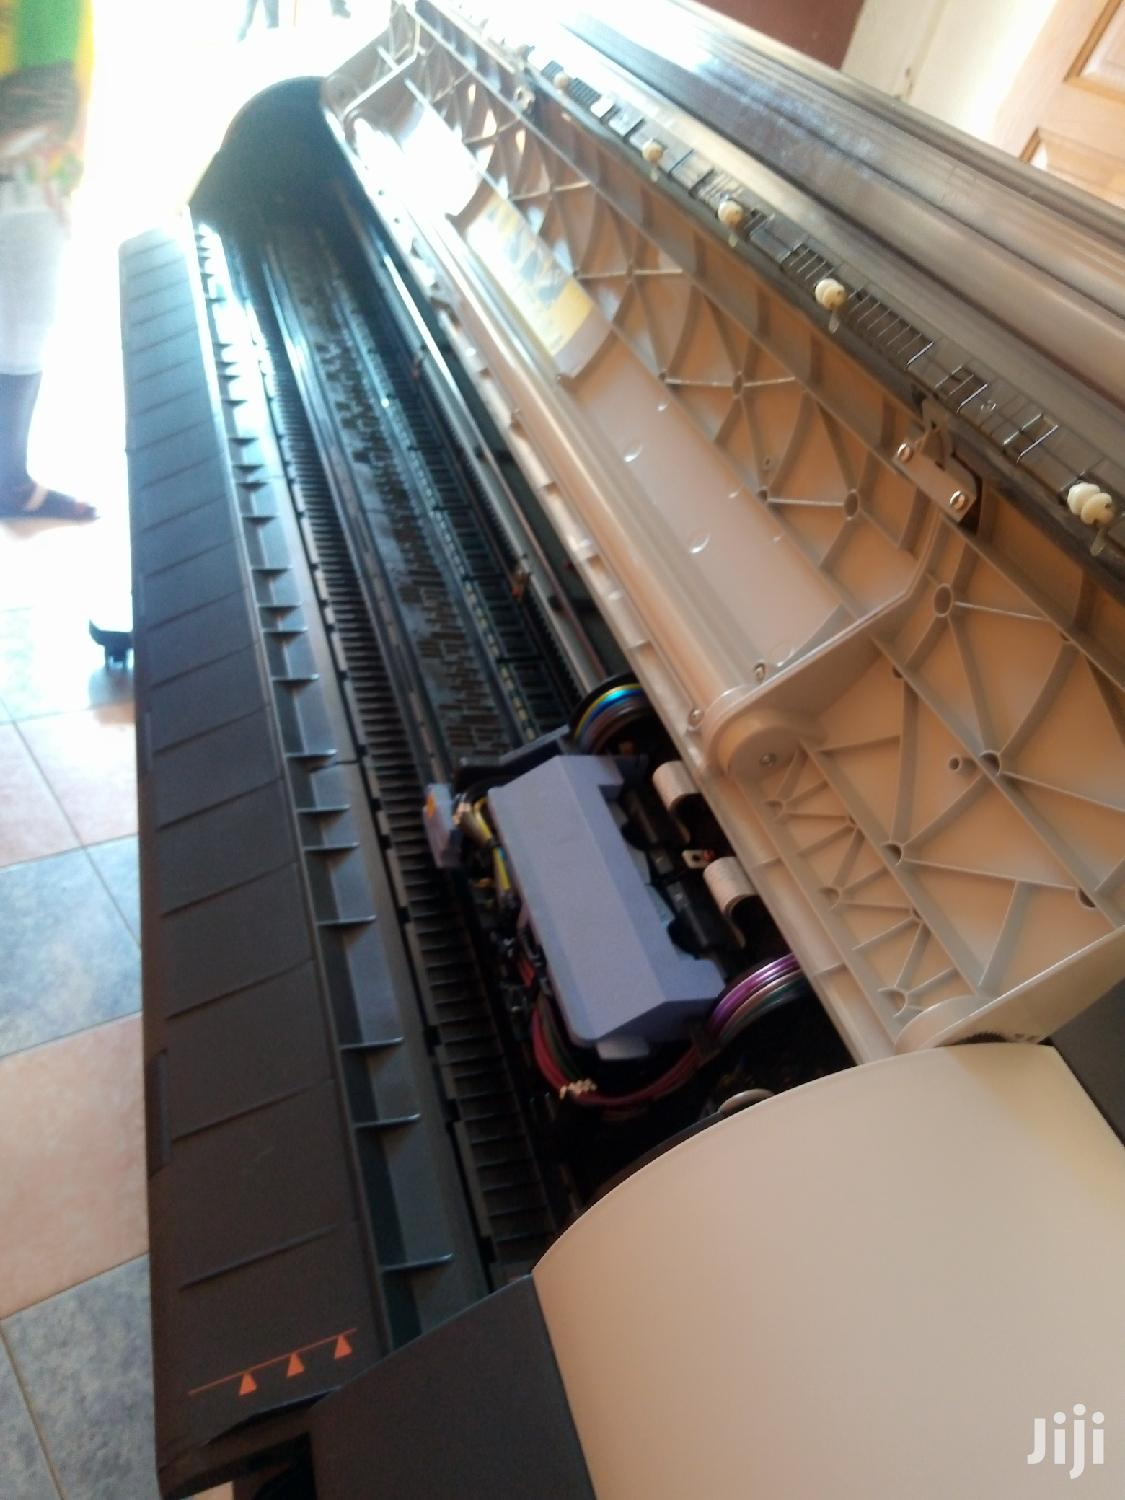 Archive: Cannon Printer Large Format Ipf9000